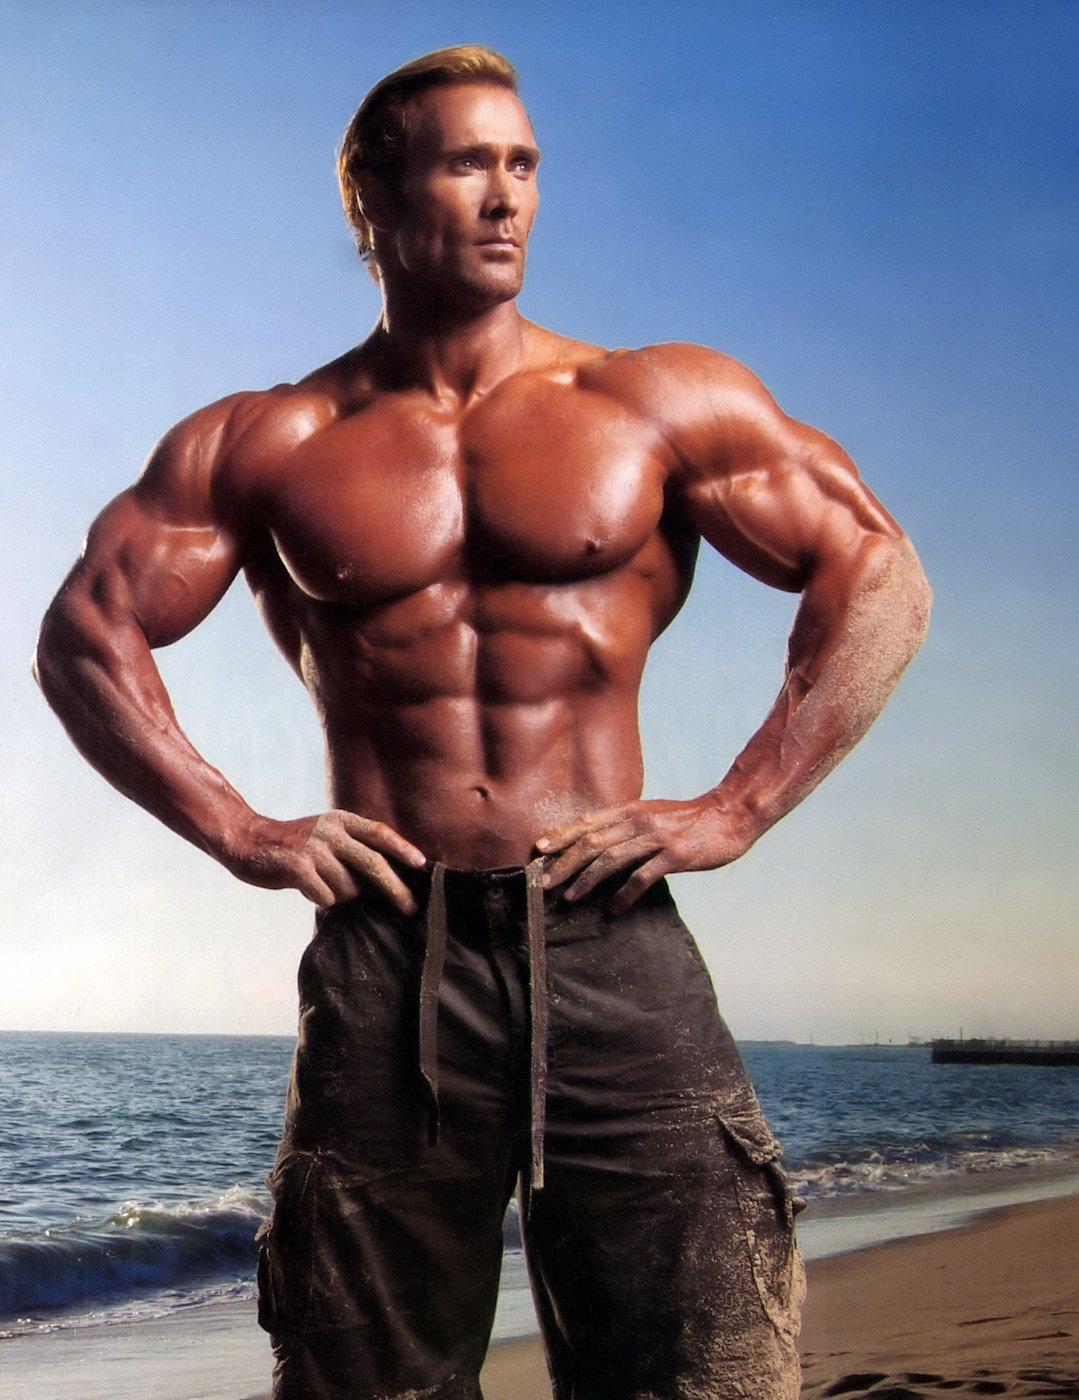 michael o hearn on steroids